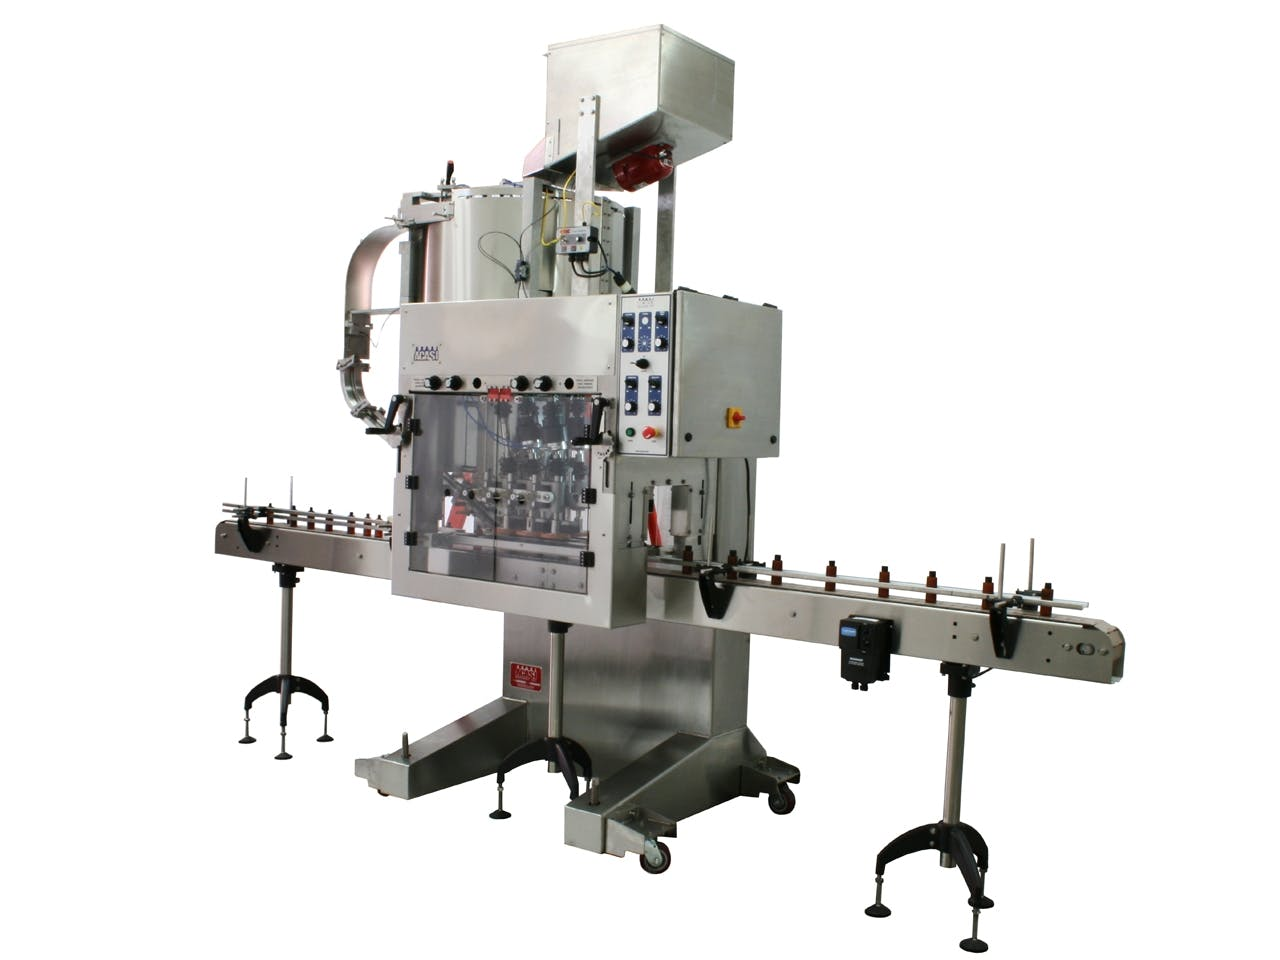 Automatic Inline Bottle Capping Machine Model CAI-X-Cent Bottle capper sold by ACASI Machinery